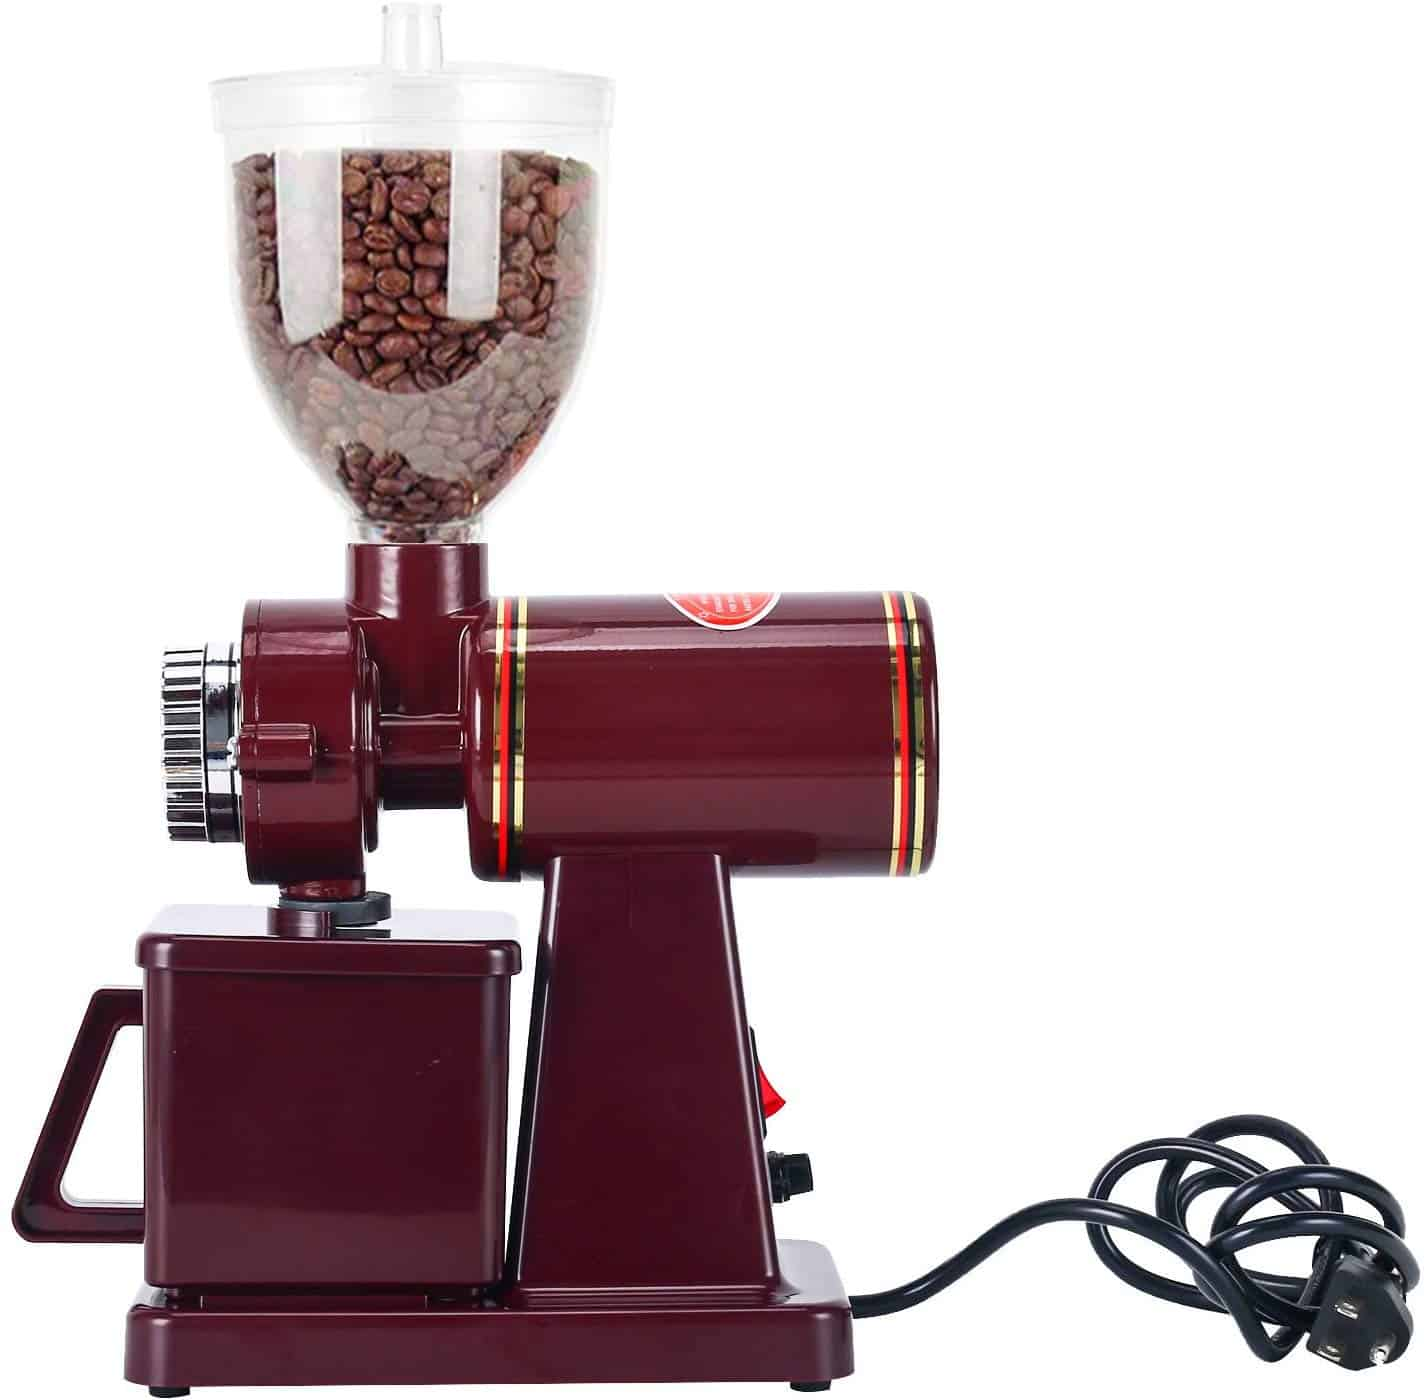 The Homend Automatic 110V Electric Burr Coffee Grinder is pictured over a field of white